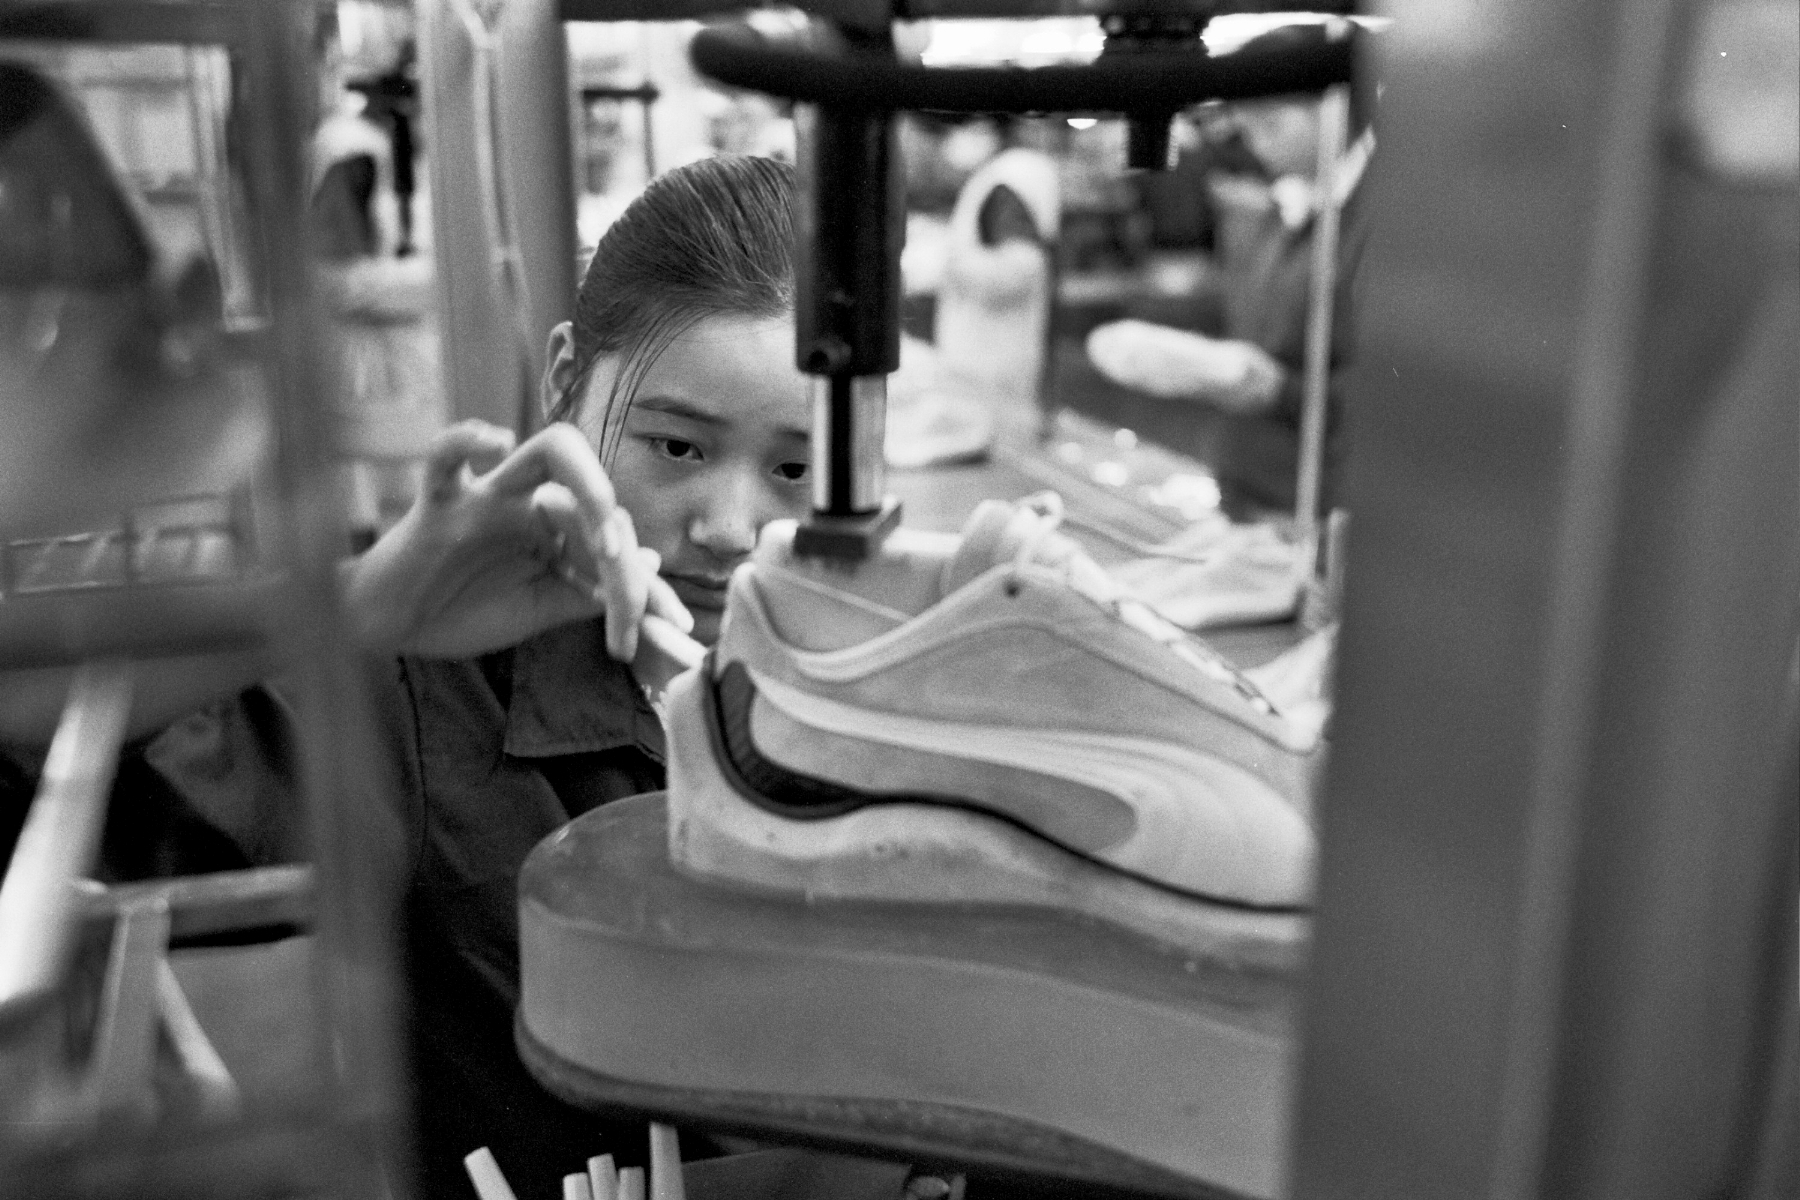 sneaker factory worker